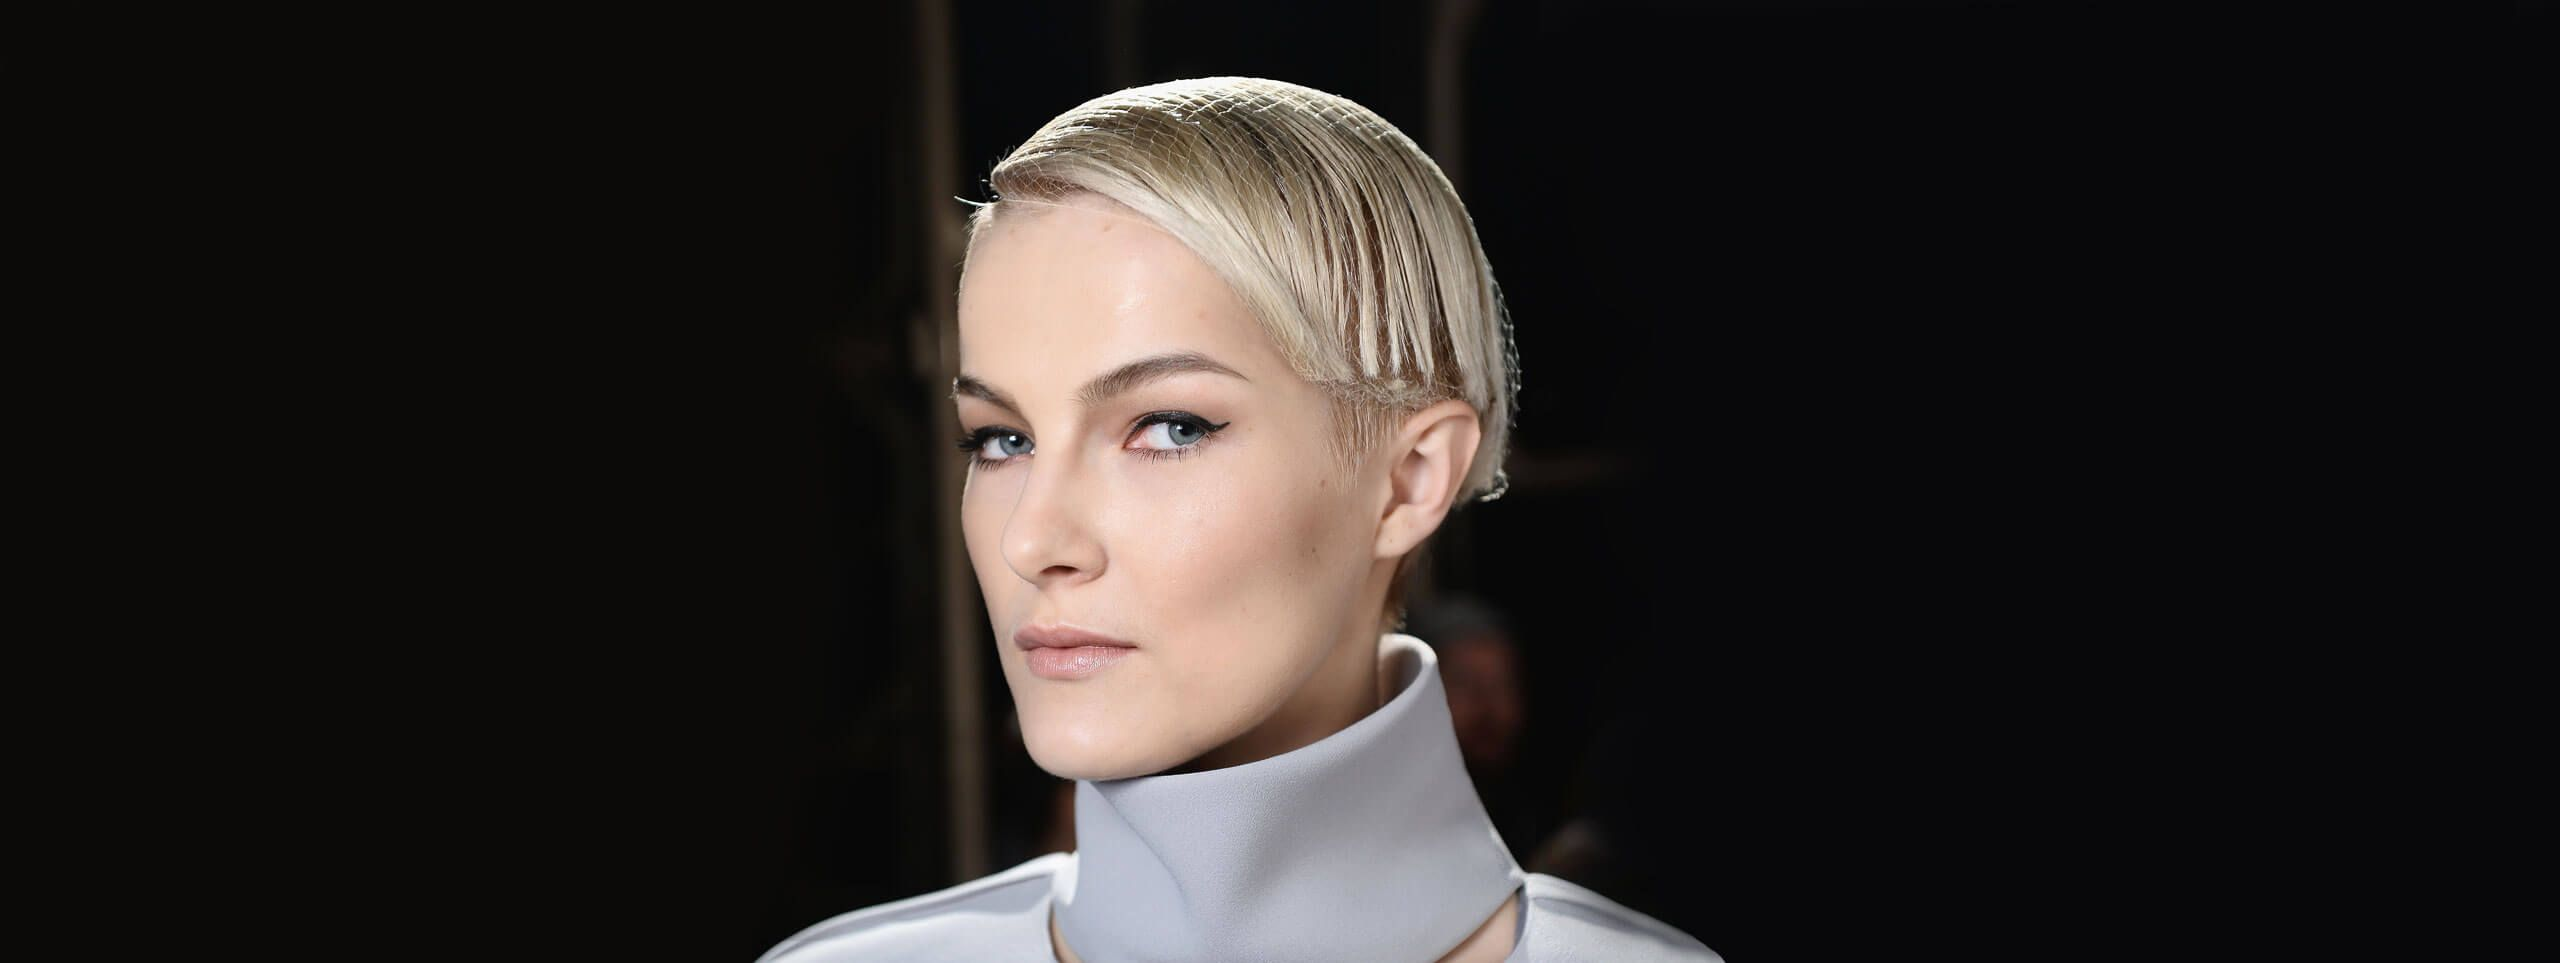 Model with short hairstyle wearing a hair net